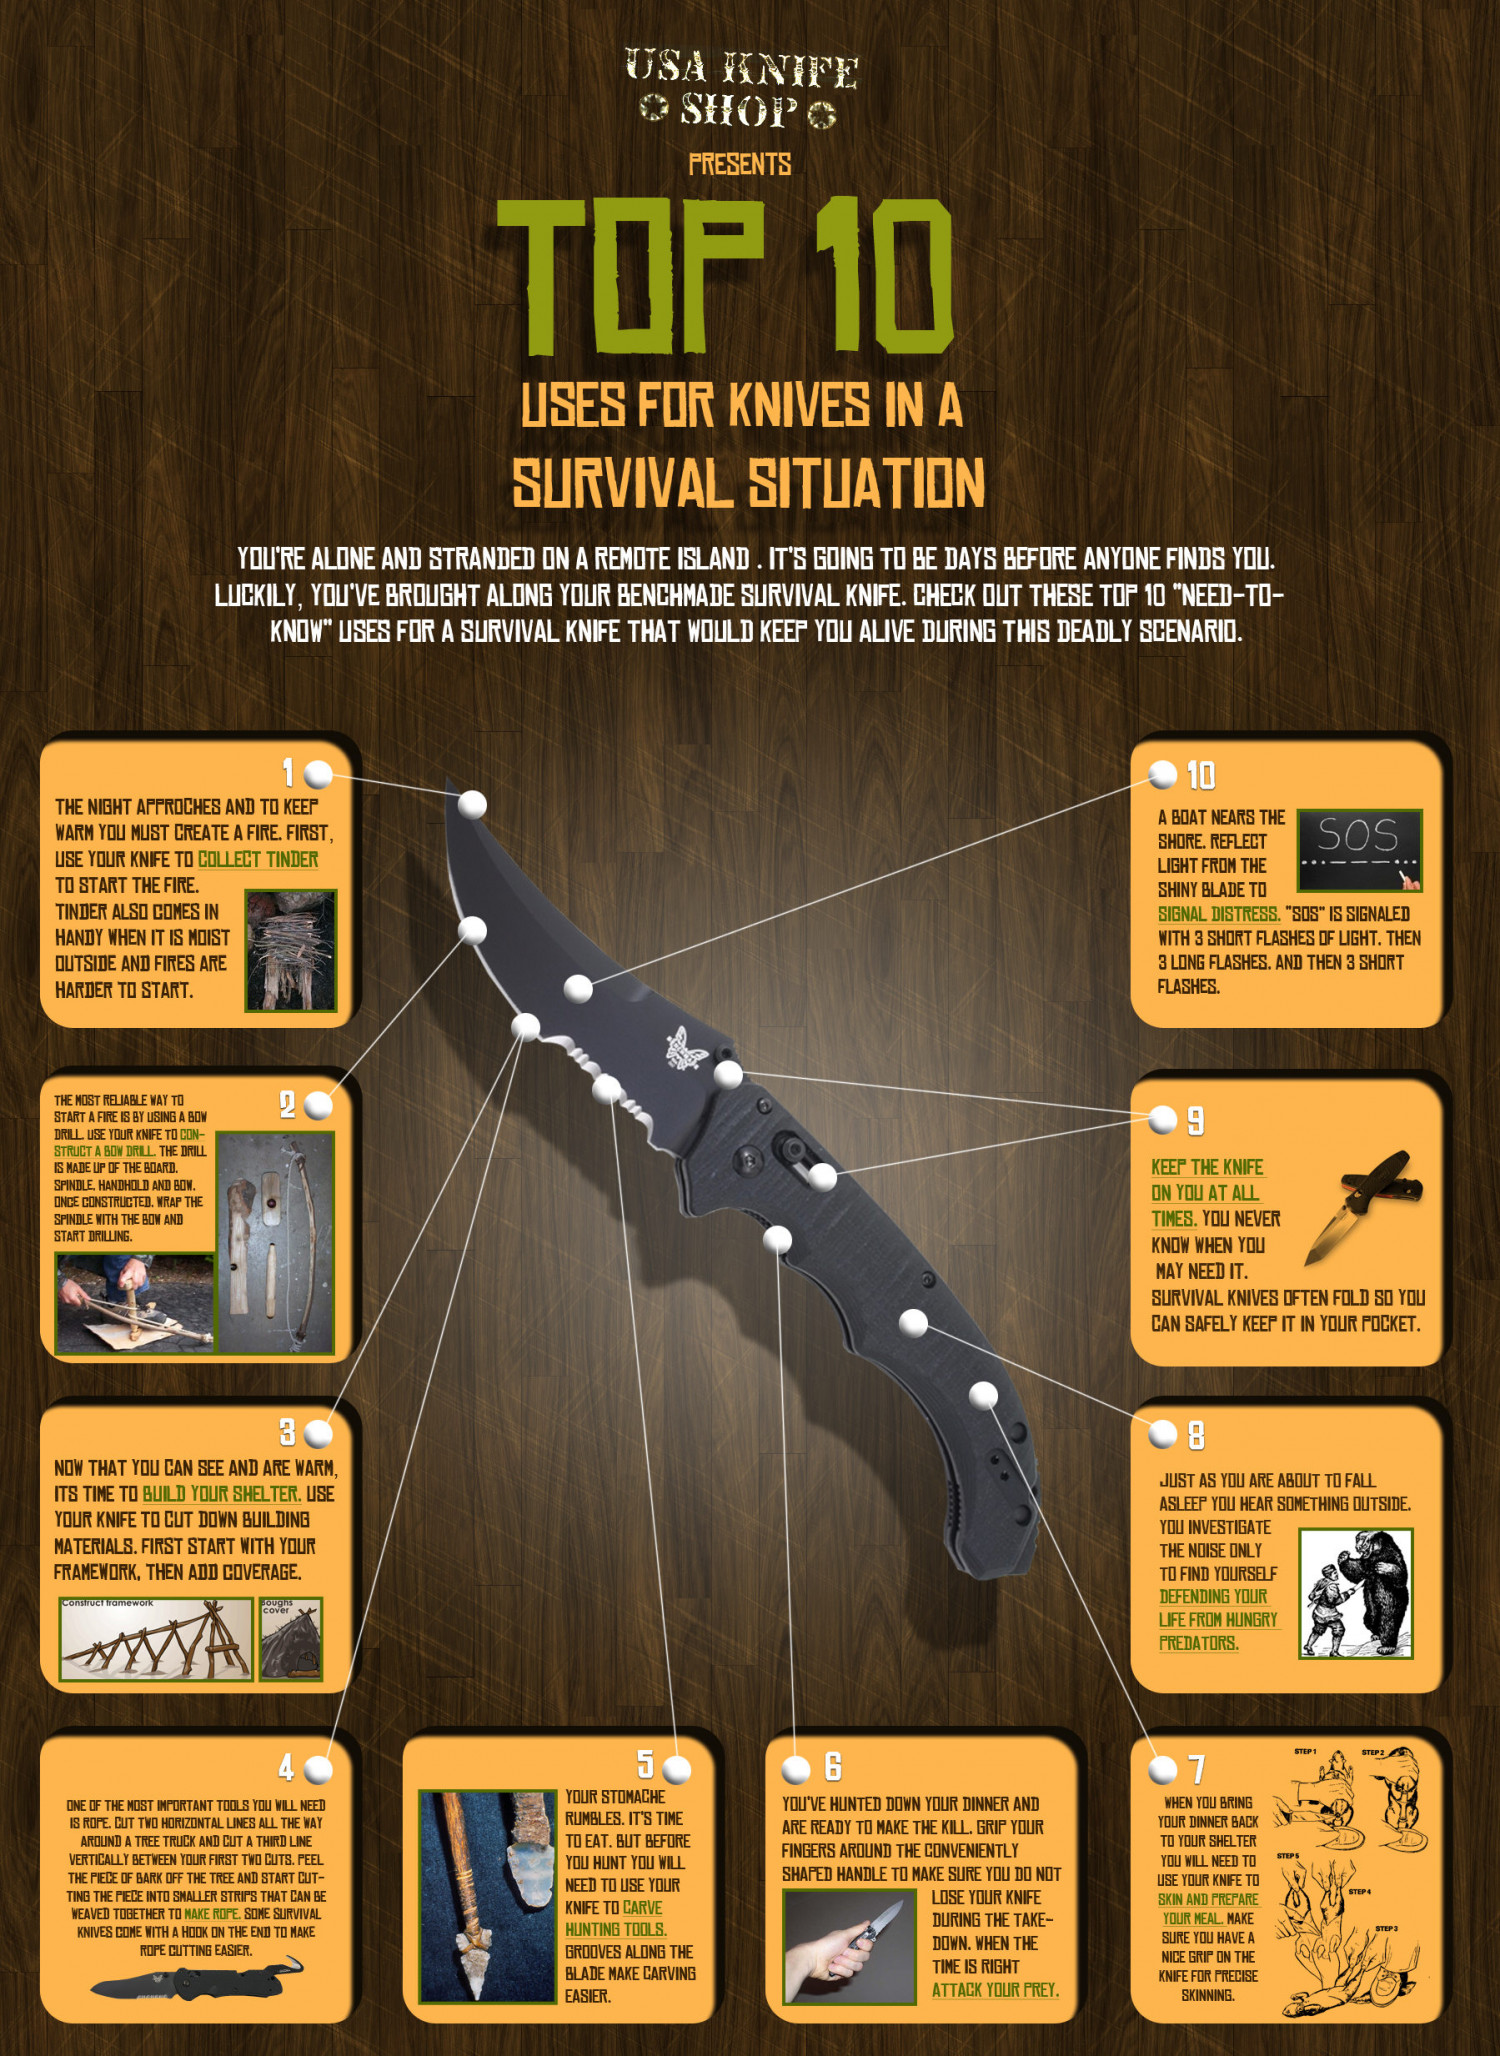 Top 10 Uses For Knives in a Survival Situation Infographic